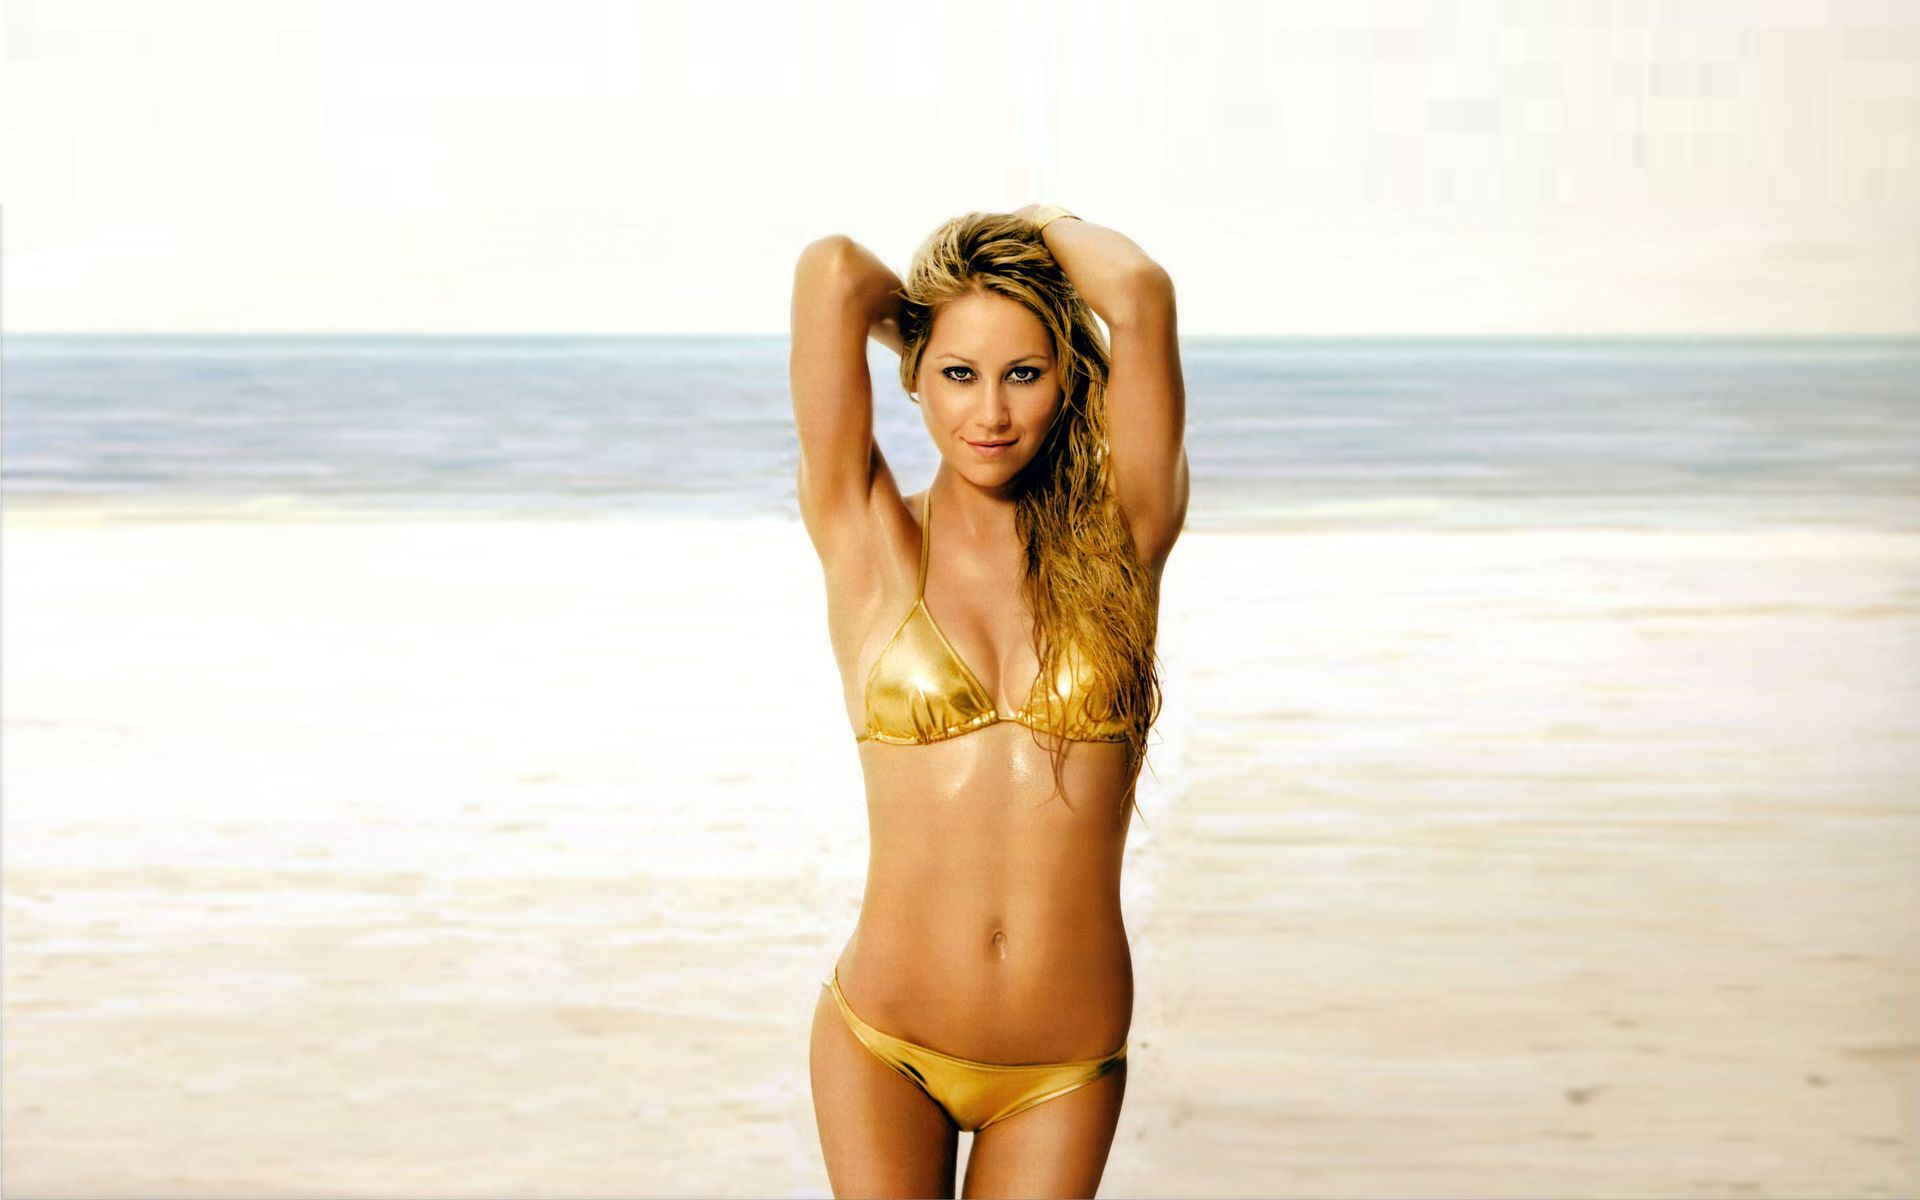 Anna Kournikova wallpapers HD quality download | wallpapers | Pinterest | Wallpaper